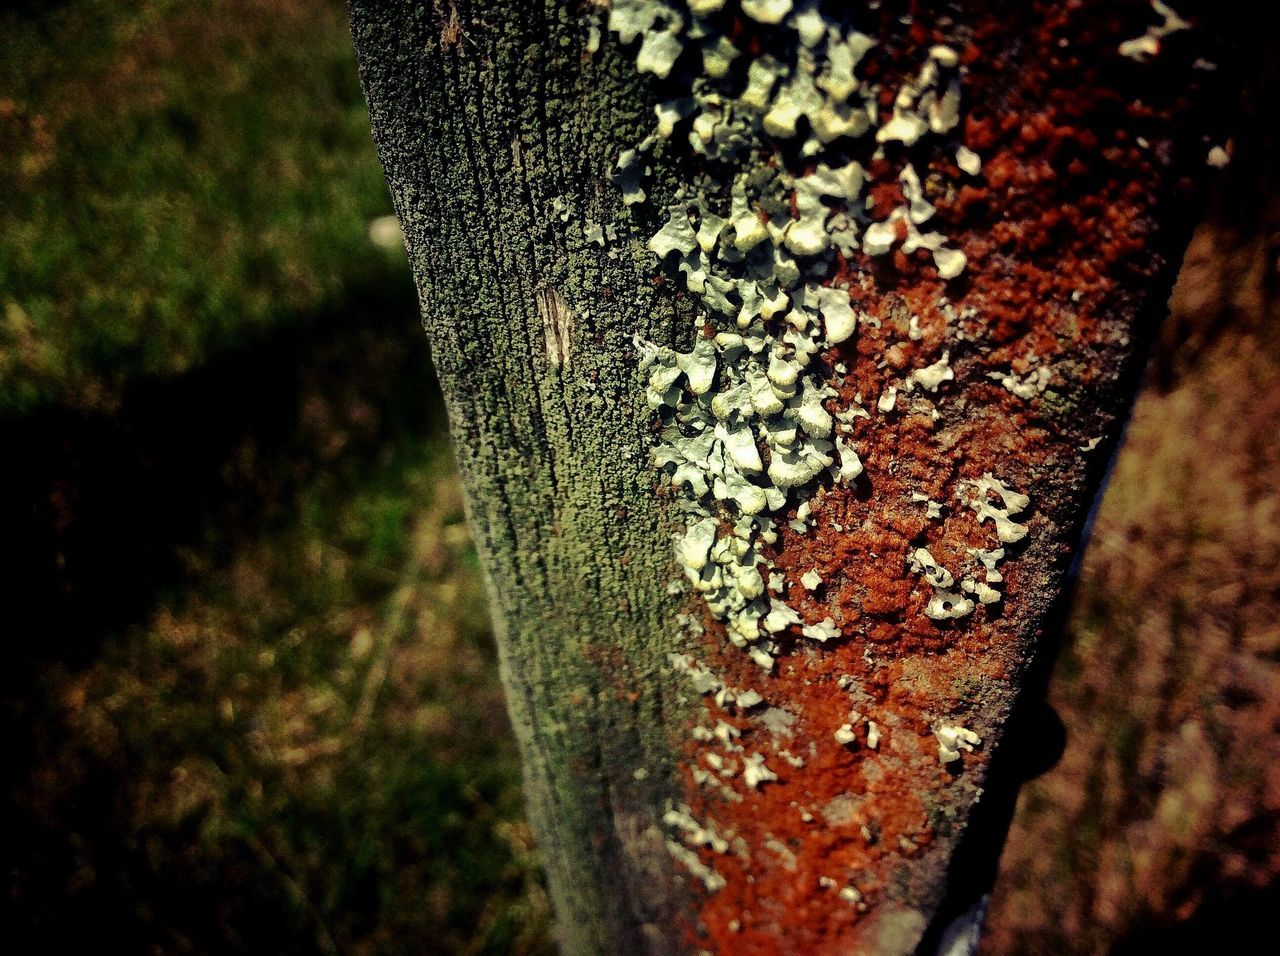 High Angle View Of Moss On Wooden Post